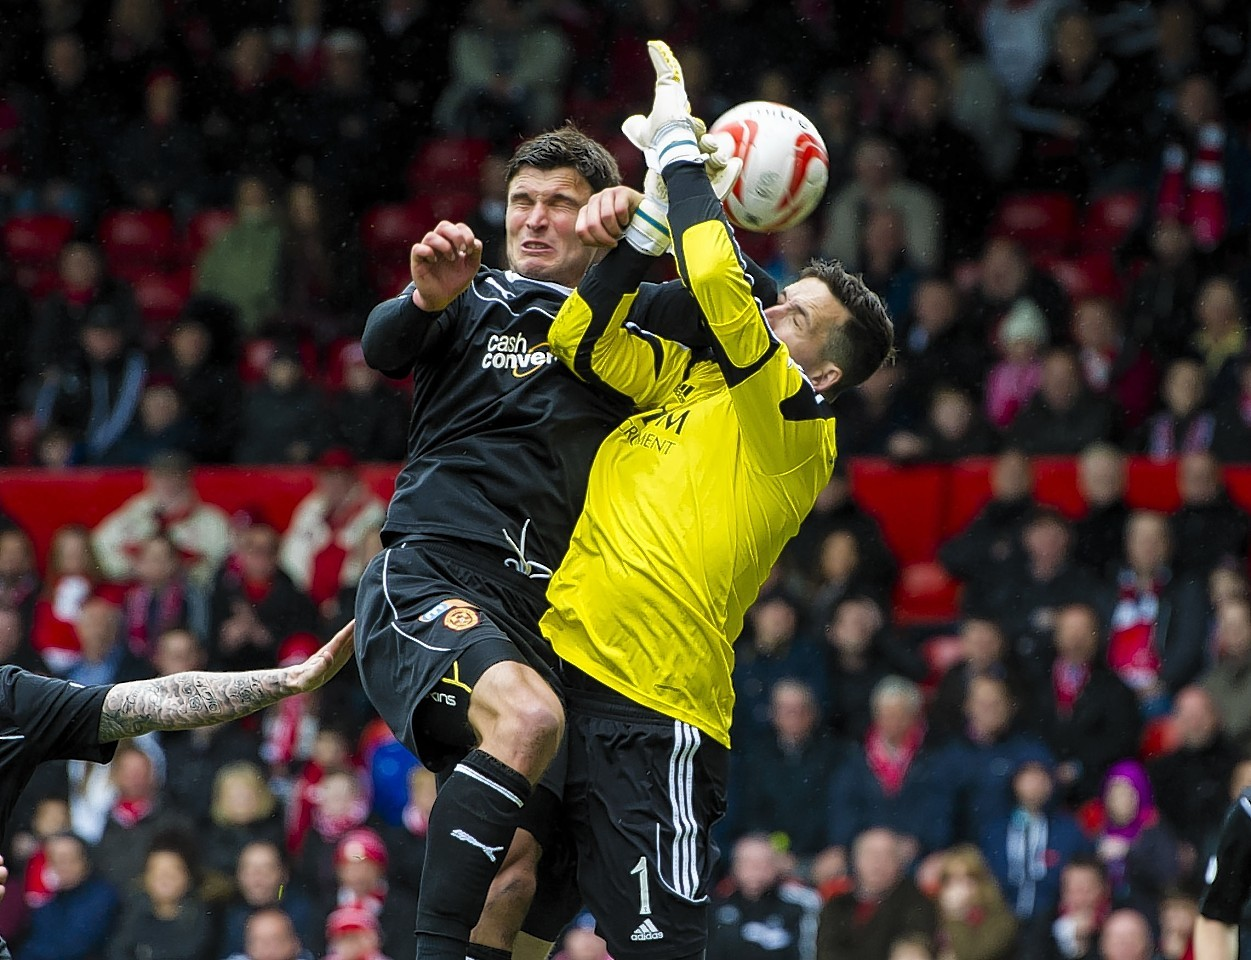 The Dons players felt John Sutton fouled Jamie Langfield in the build up to the goal